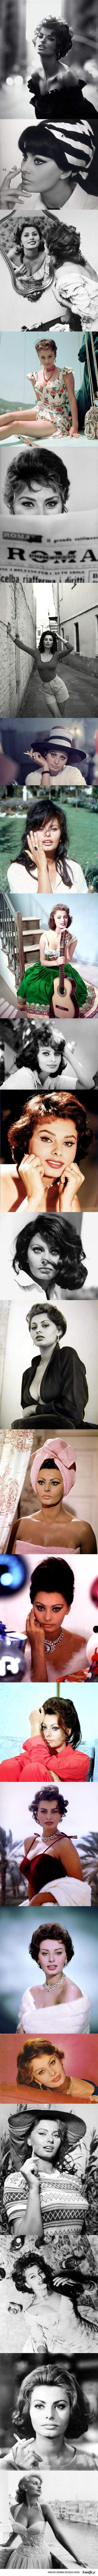 Sophia Loren is one of the most beautiful women ever created!!!